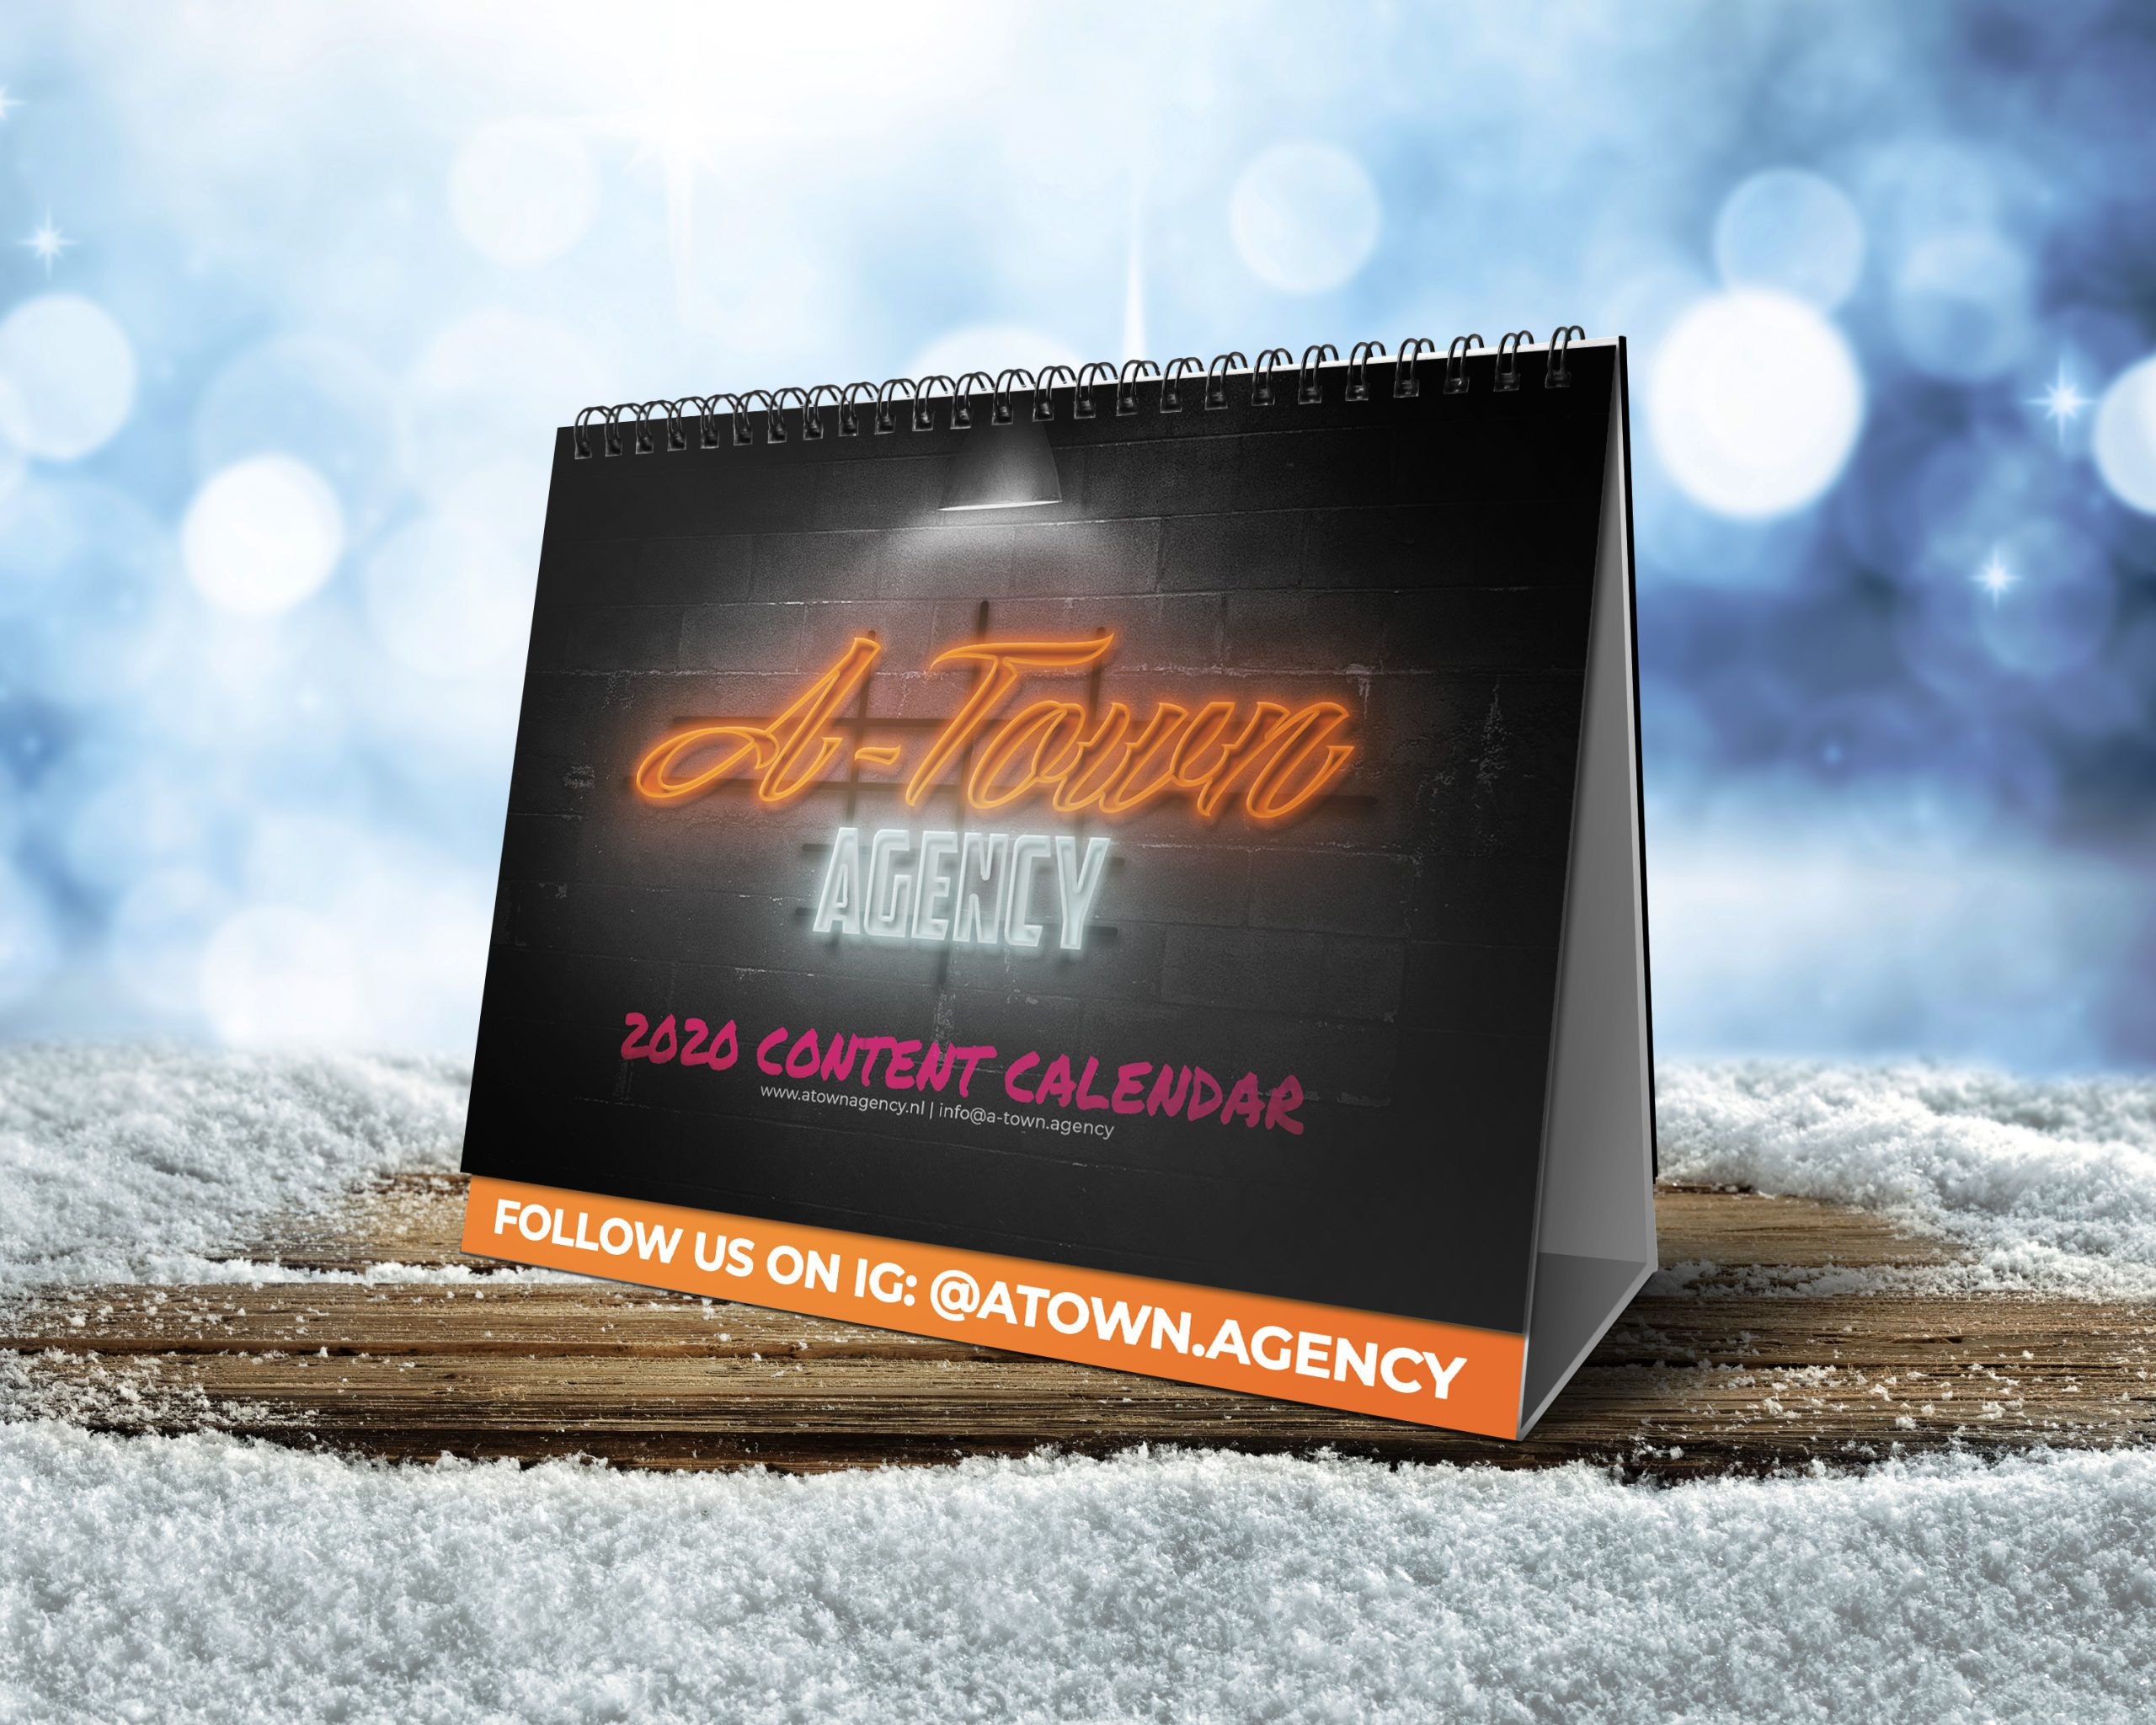 Free Content Calendar 2020 - By Abigael Straver / A-Town Agency